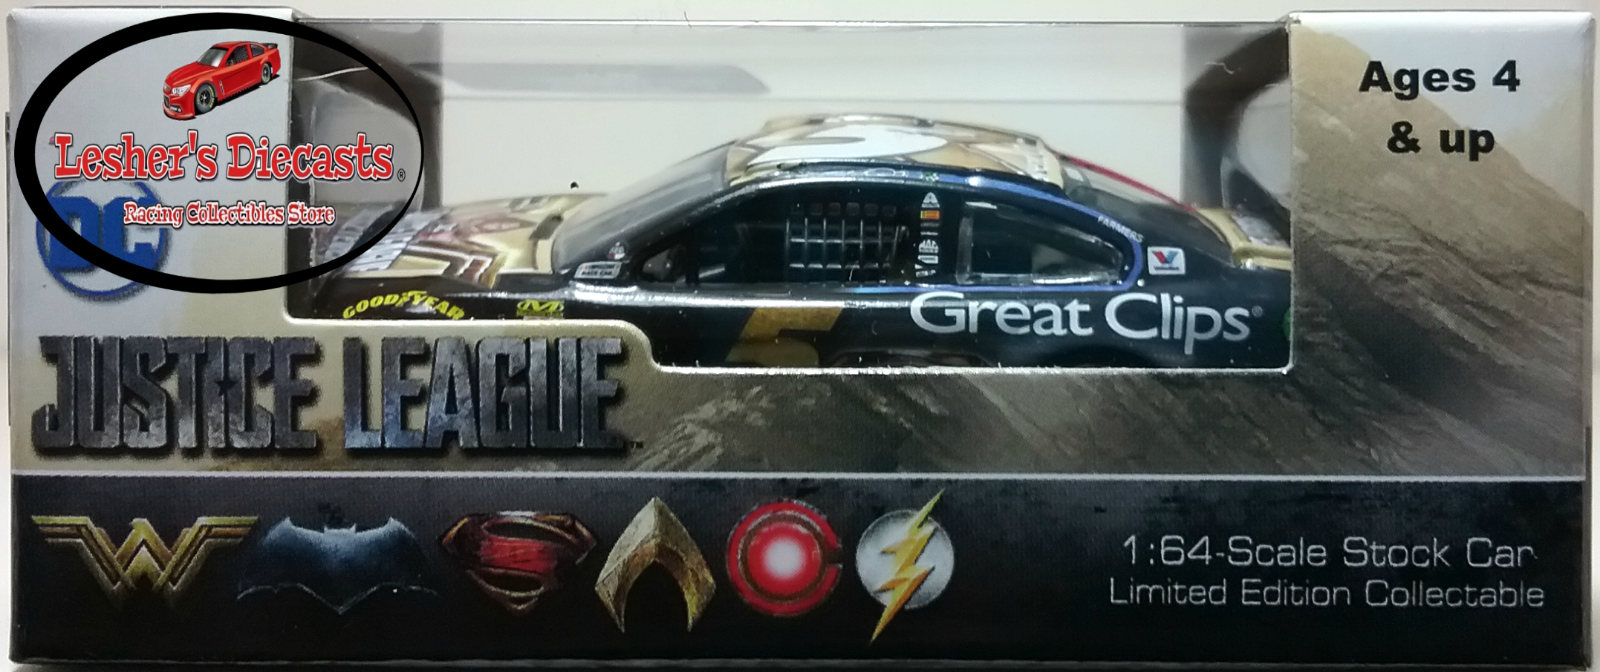 Kasey Kahne 2017 #5 Great Clips Justice League Chevy SS 1:64 ARC -